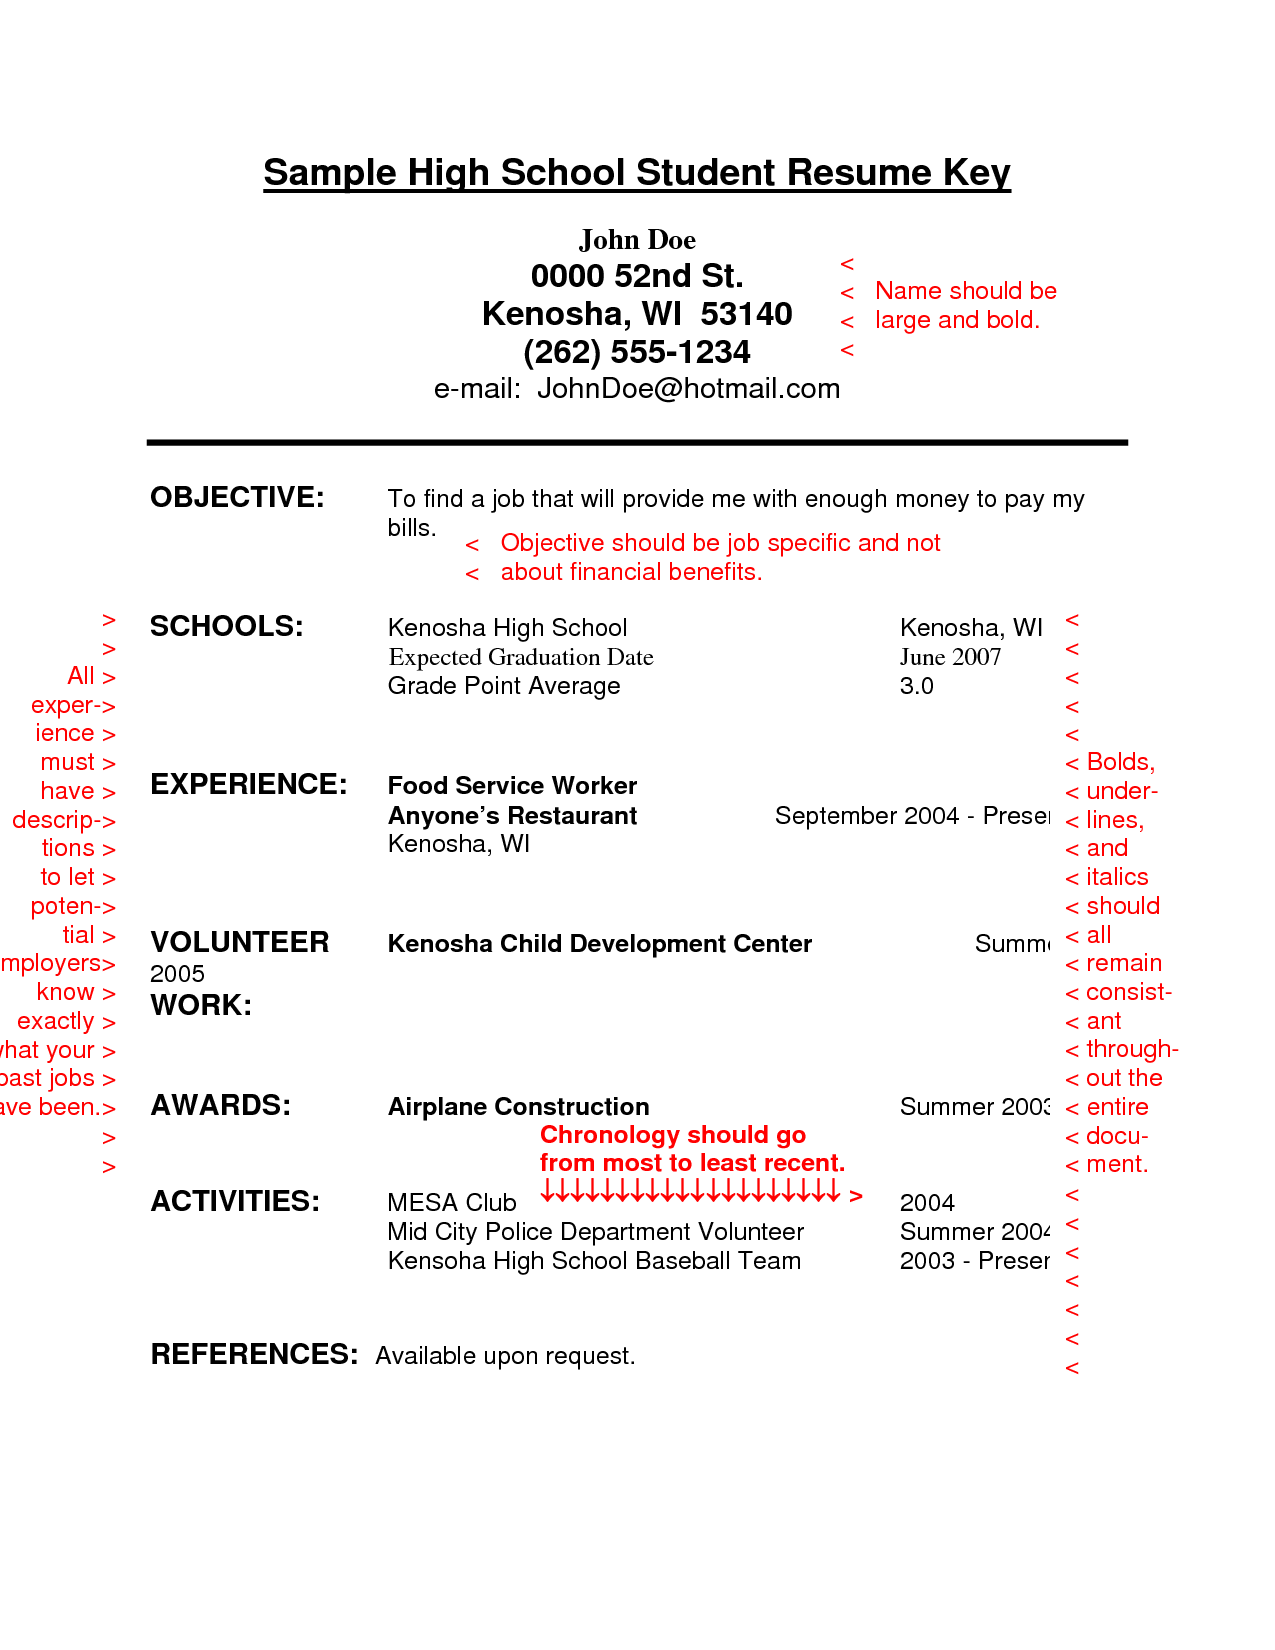 Resume Examples For High School Students #examples #resume #ResumeExamples # school #students